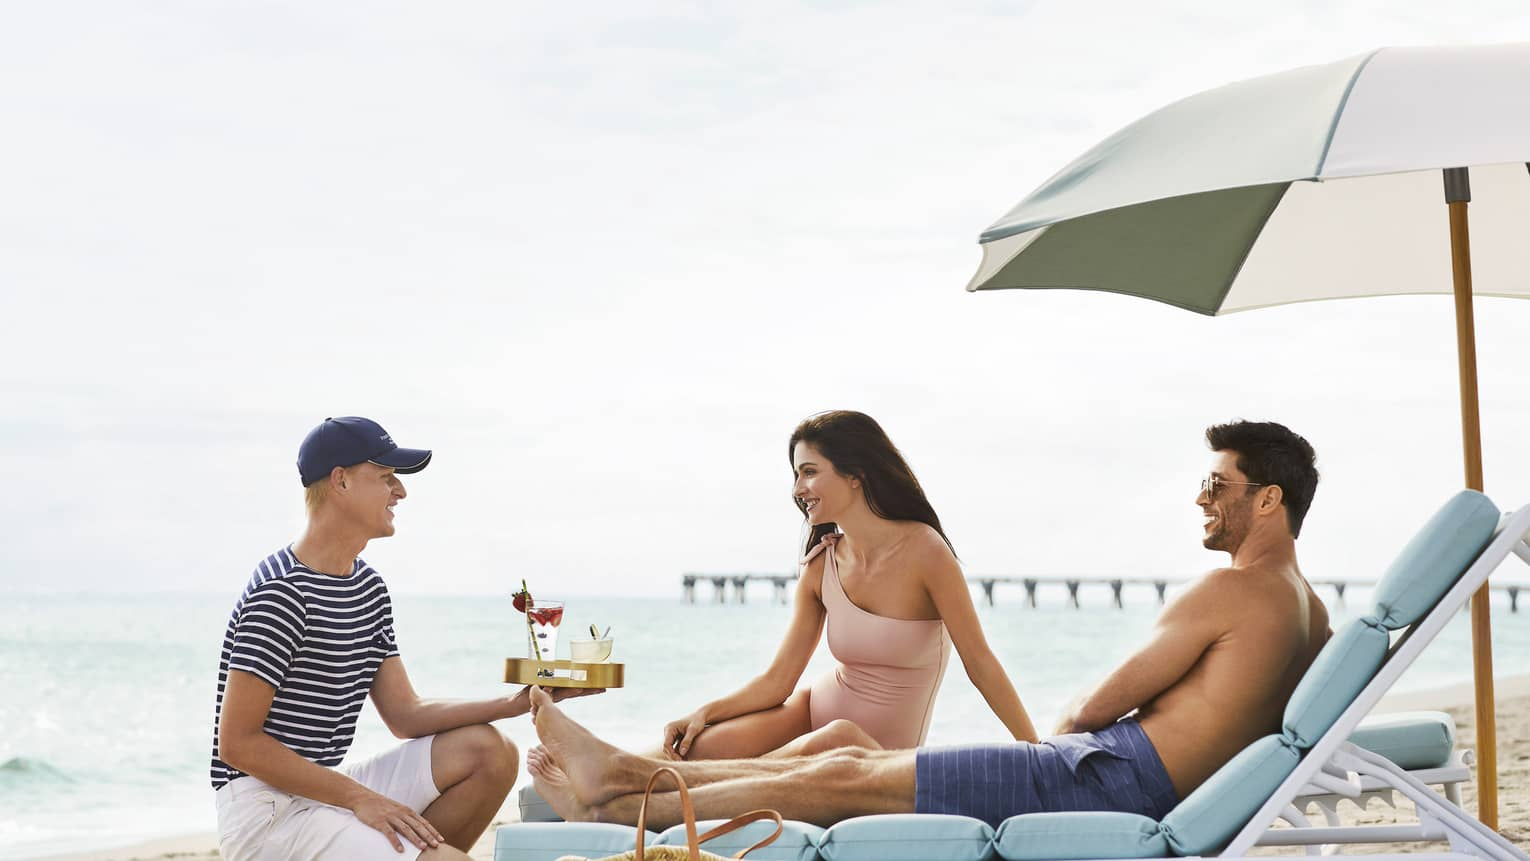 A couple receives drinks as they relax under an umbrella on the beach